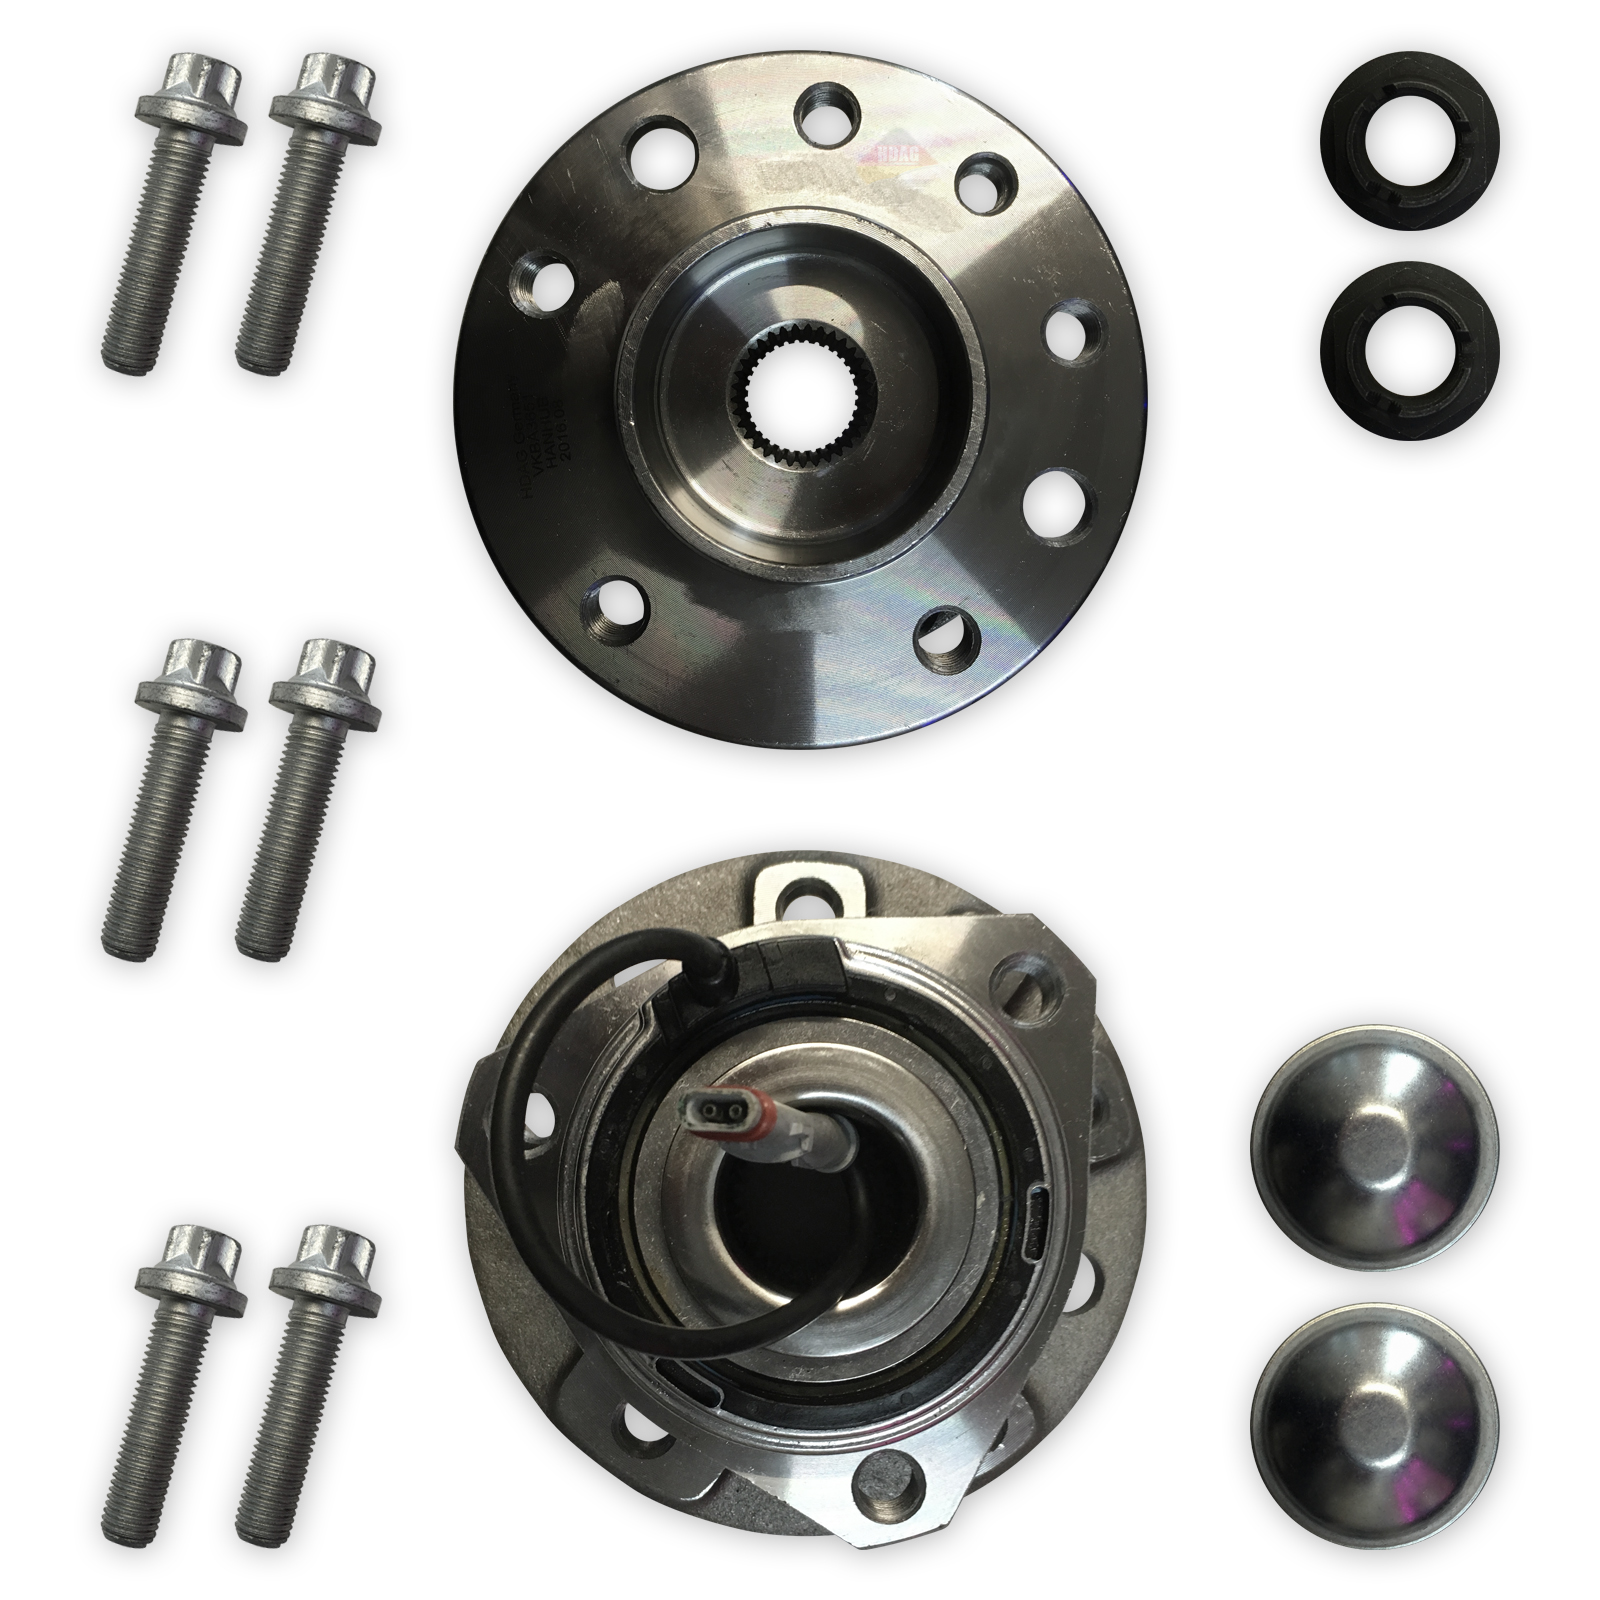 VAUXHALL ASTRA H MK5 O//S FRONT DRIVER SIDE RIGHT HUB WHEEL BEARING